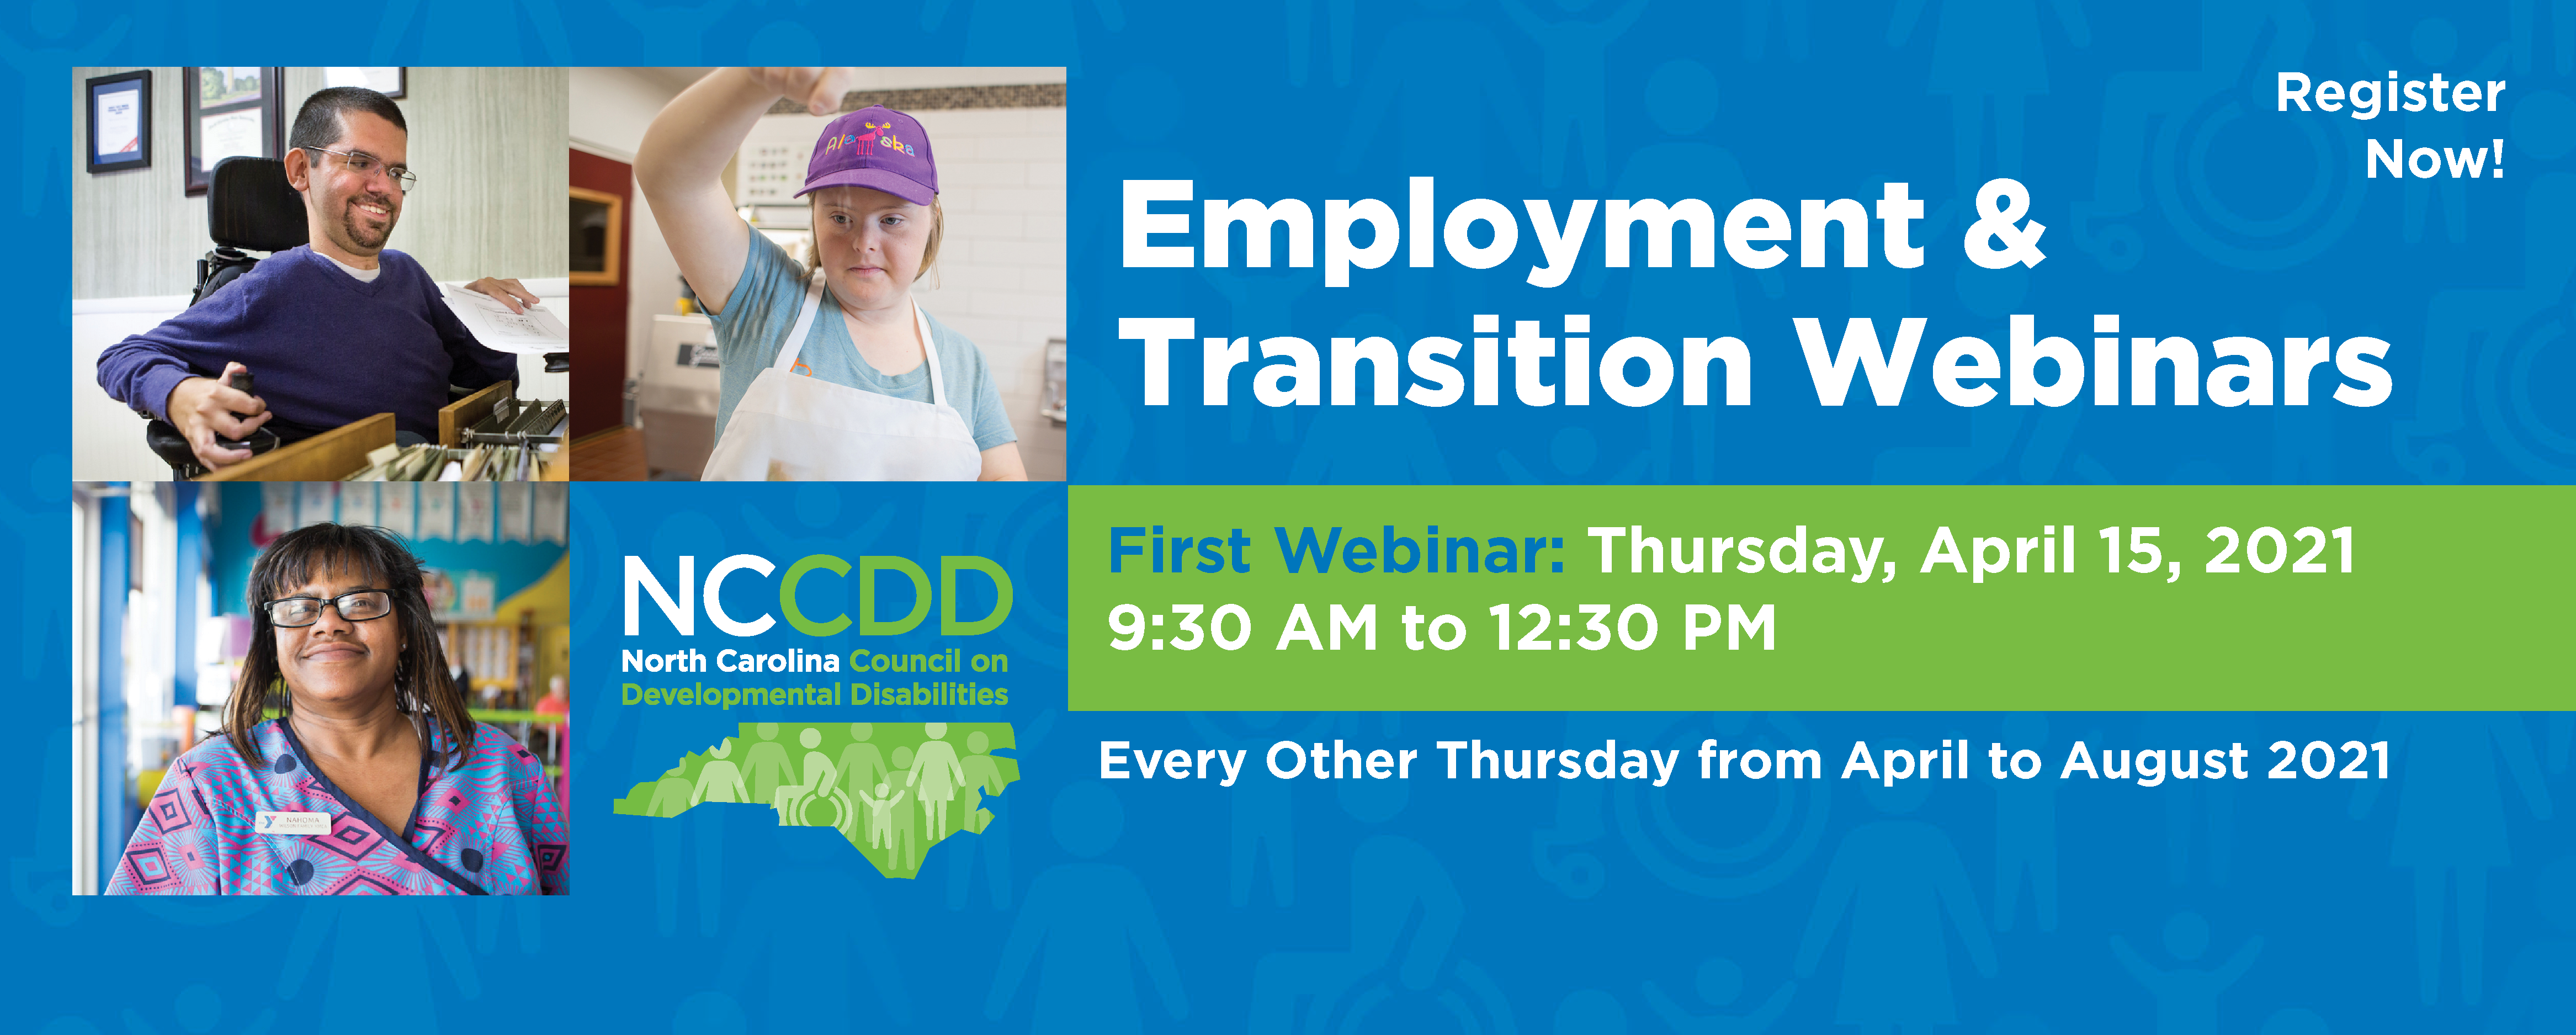 Employment & Transition Webinars Every Ohter GThursday from April to August 2021, 9:30 AM to 12:30 PM